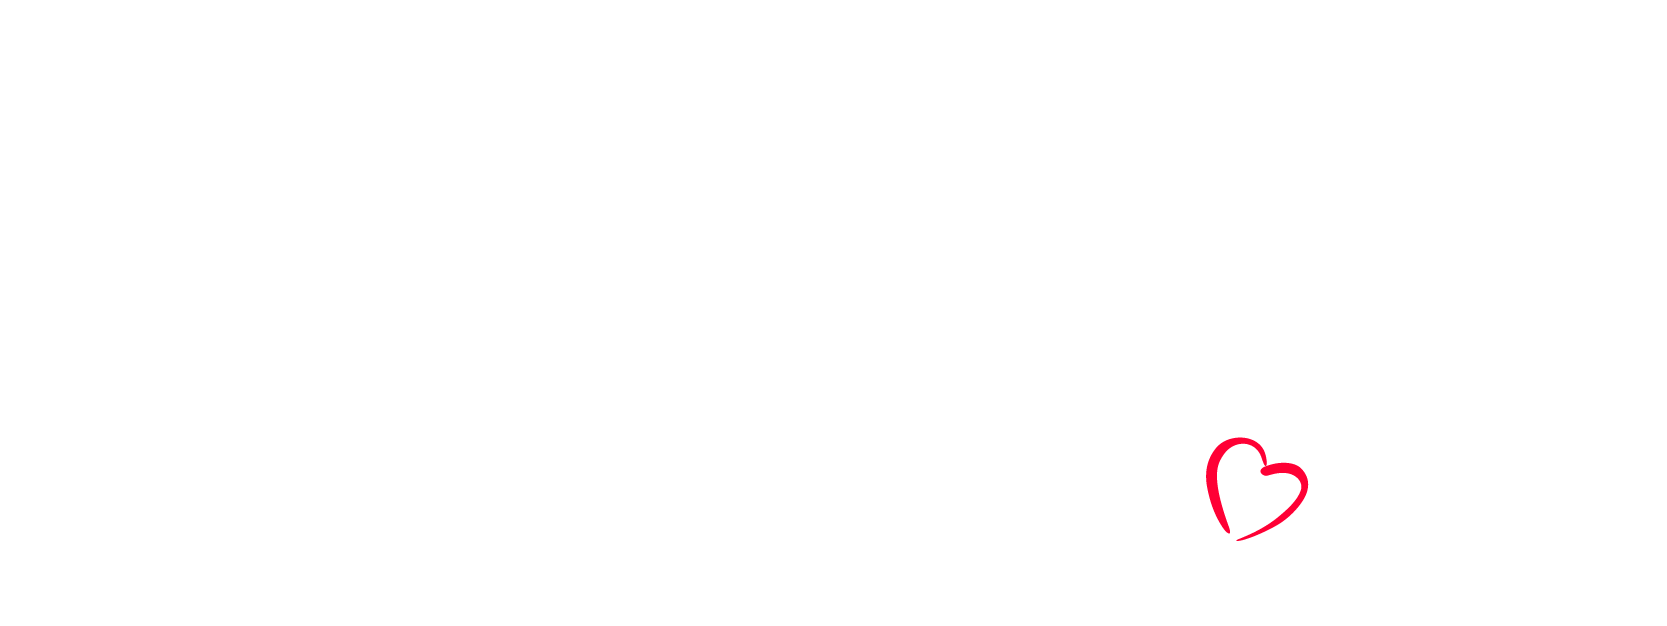 Bellemore Optometry